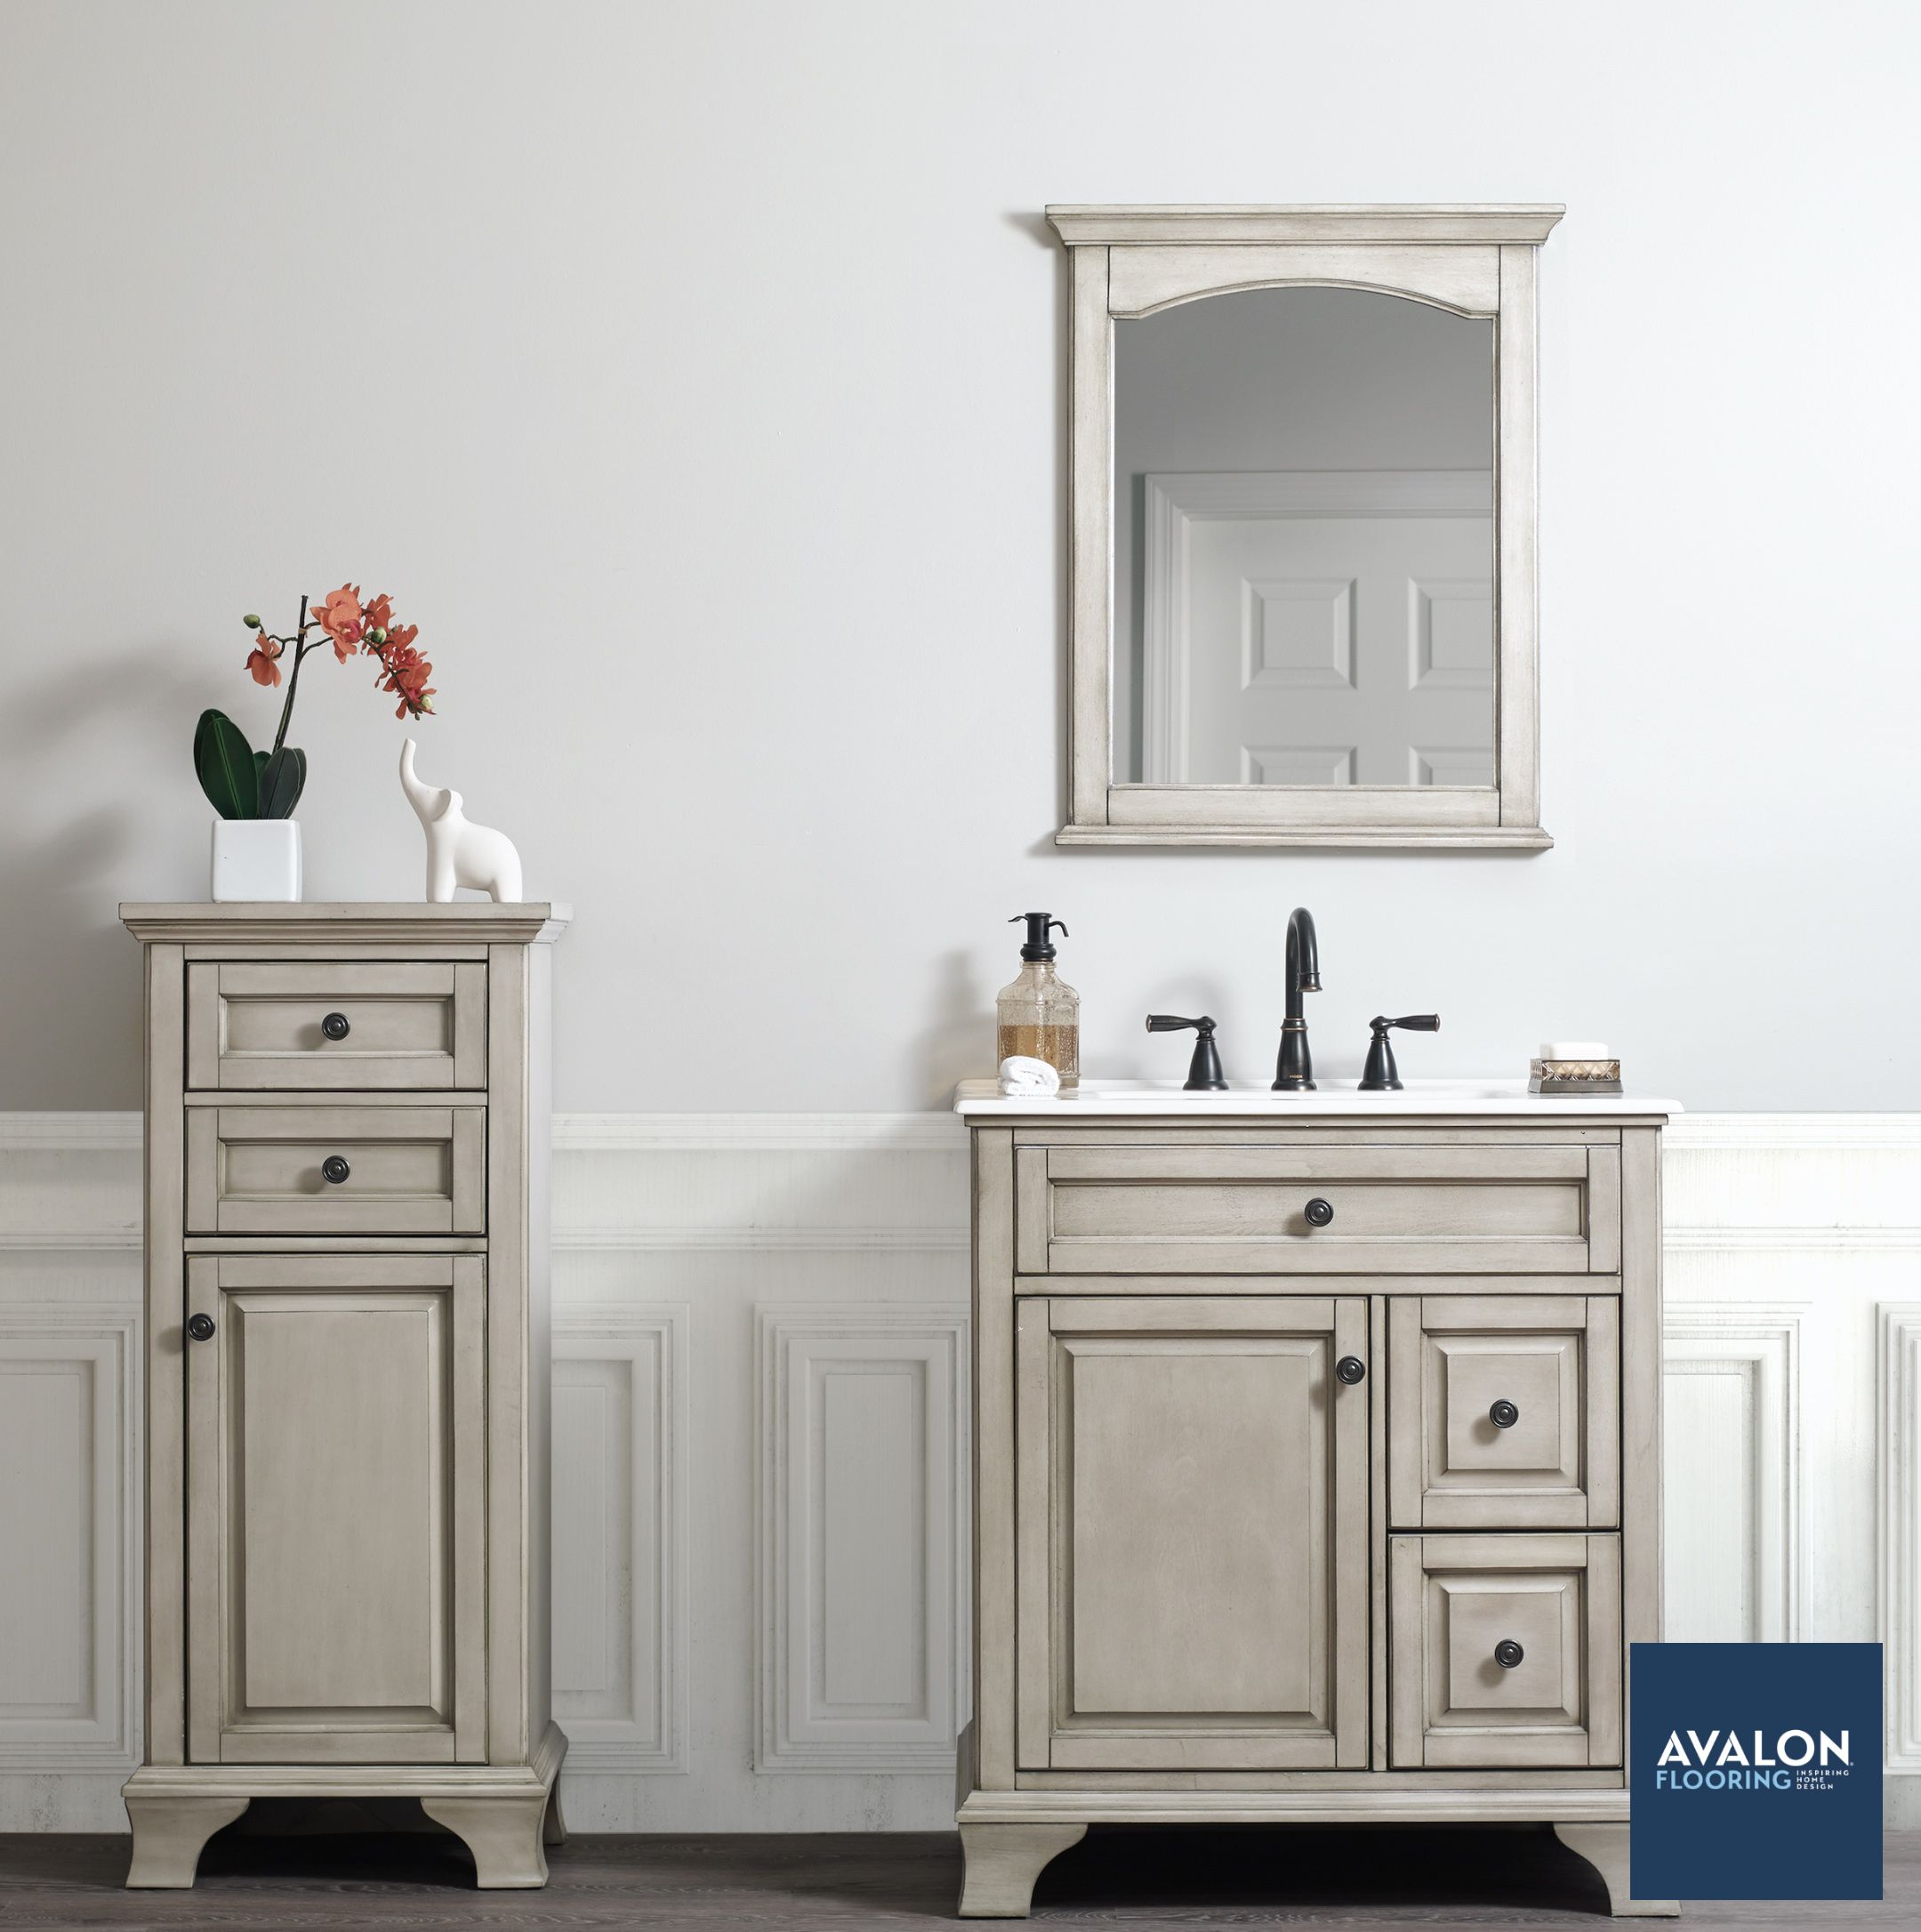 Vanities Are A Must For All Bathroomsnn Bathroomvanities Vanity Bathroomvanity Einrichtungsstil Einrichtung Badezimmer